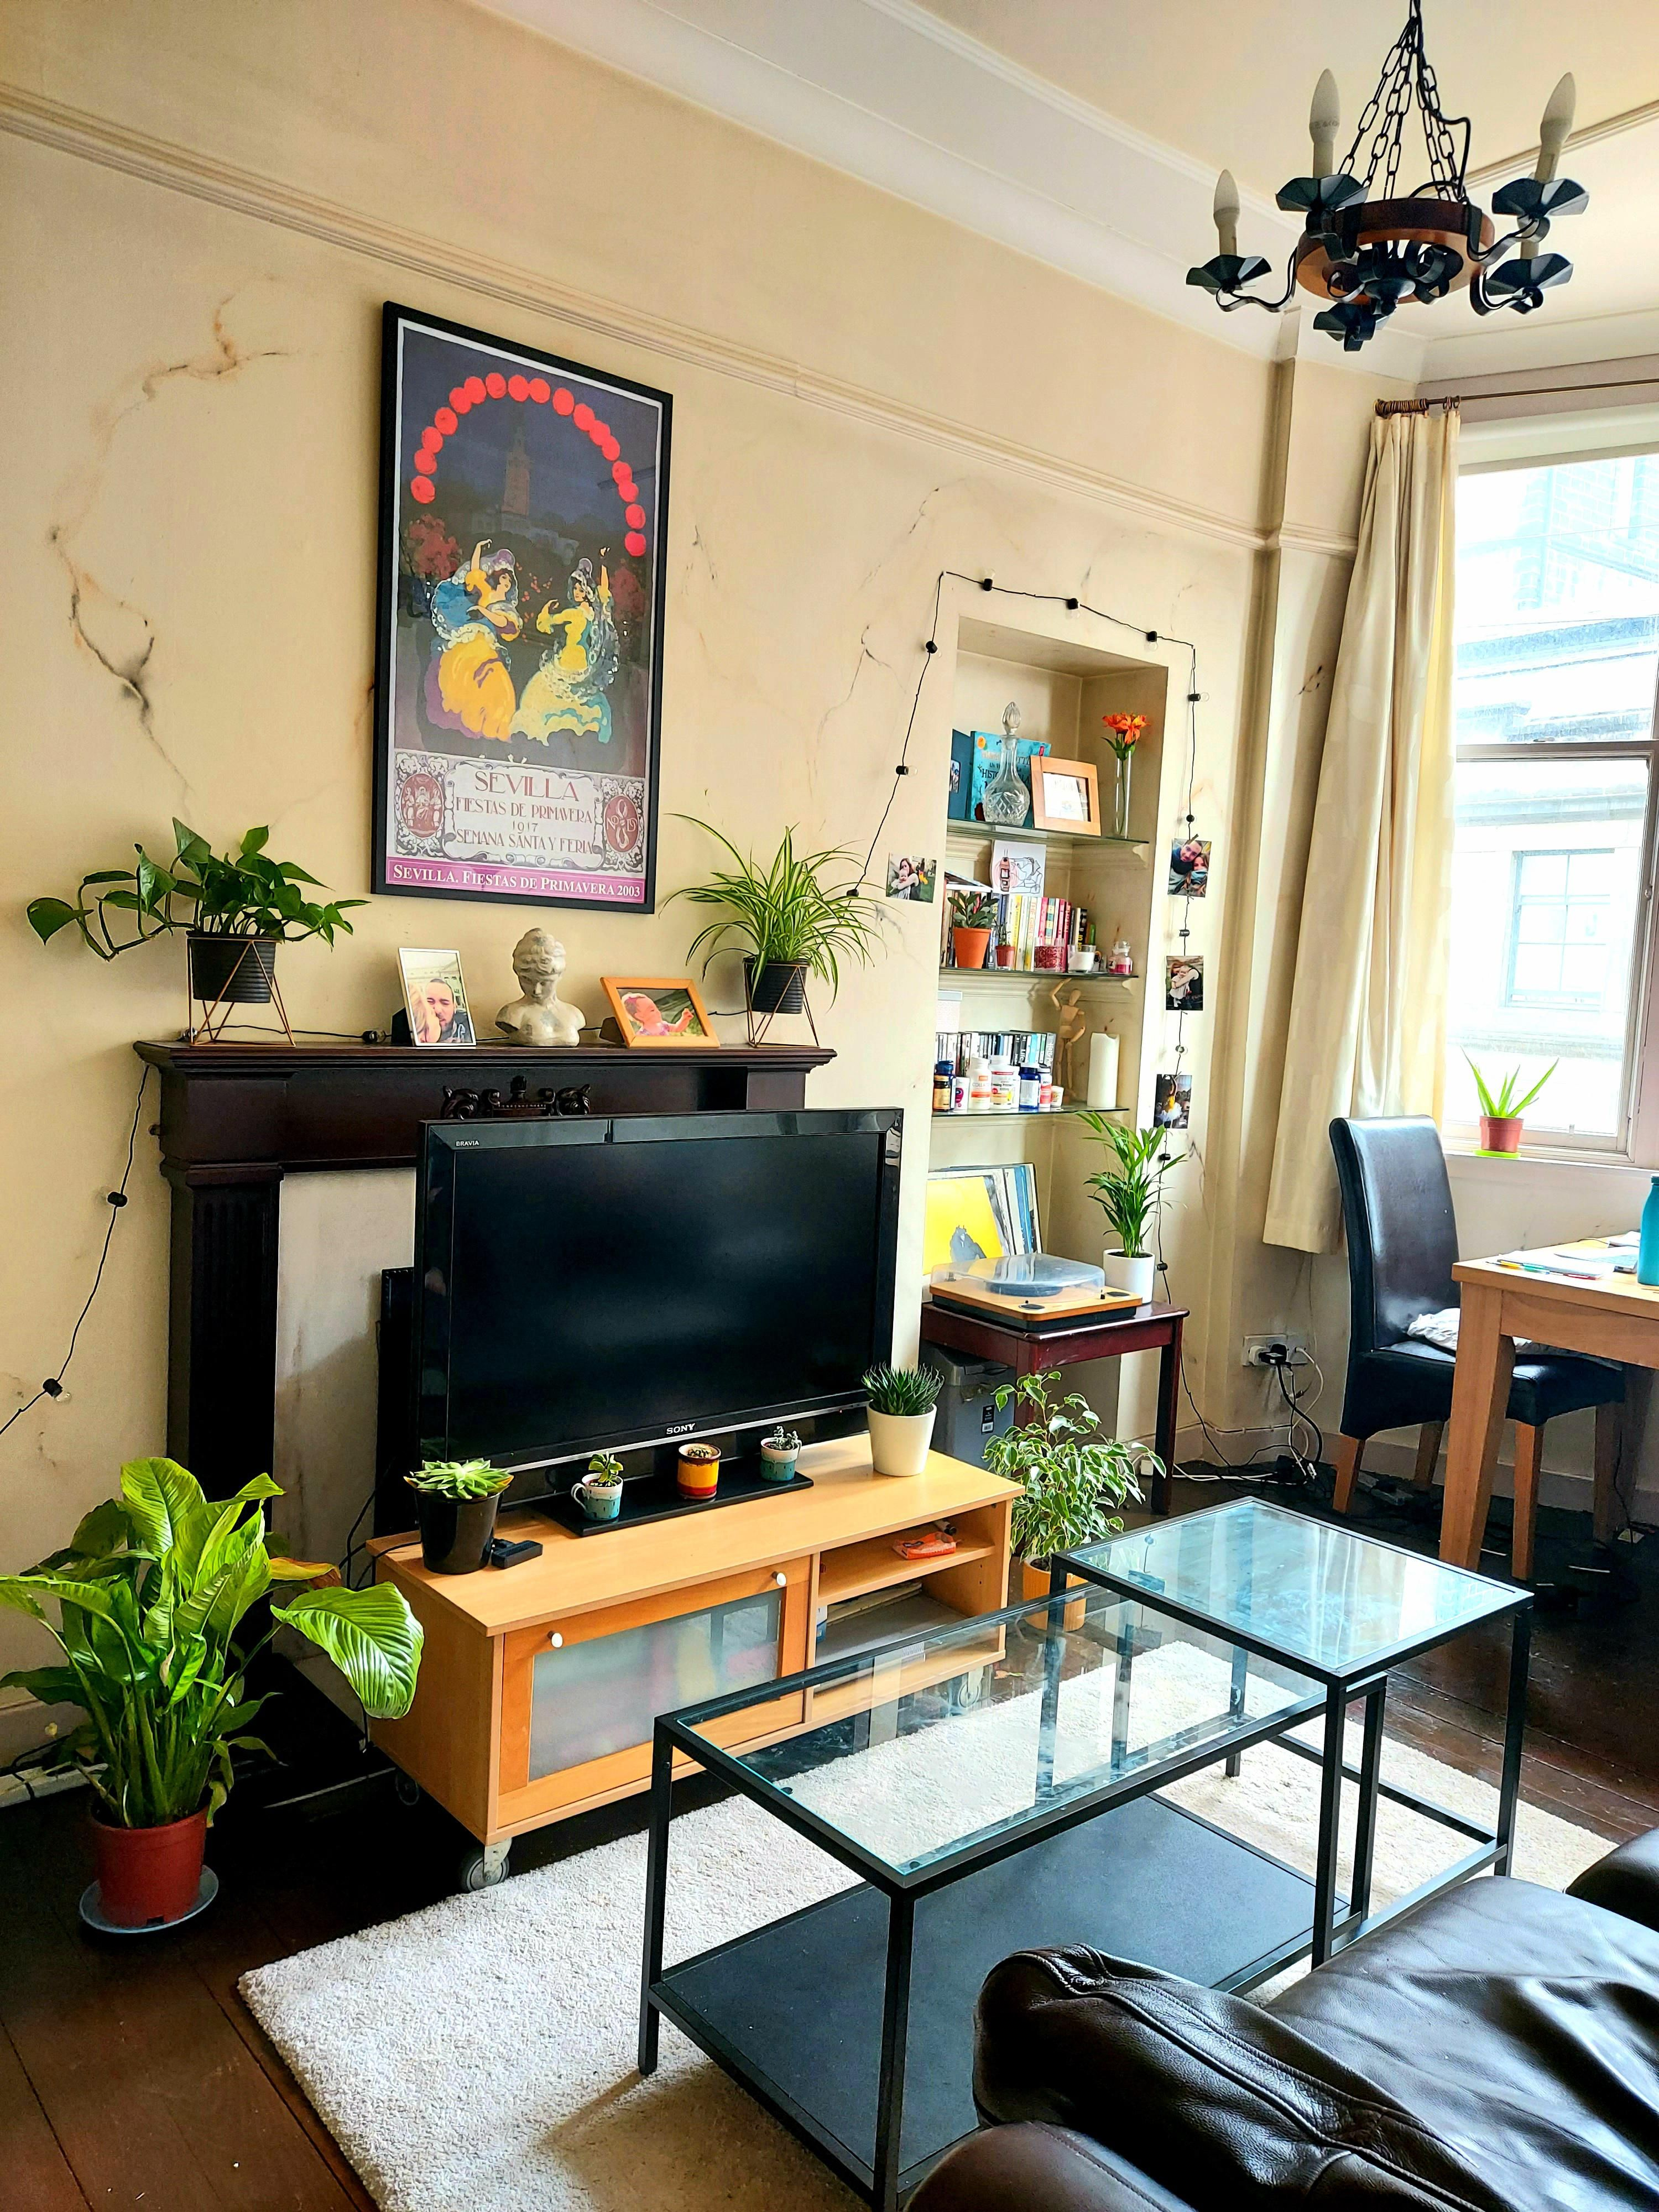 Our Cosy Wee Living Room In Glasgow Scotland Amazing What Some Plants And A Pop Of Colour Can Do Home Decor Living Room House Interior The living rooms glasgow